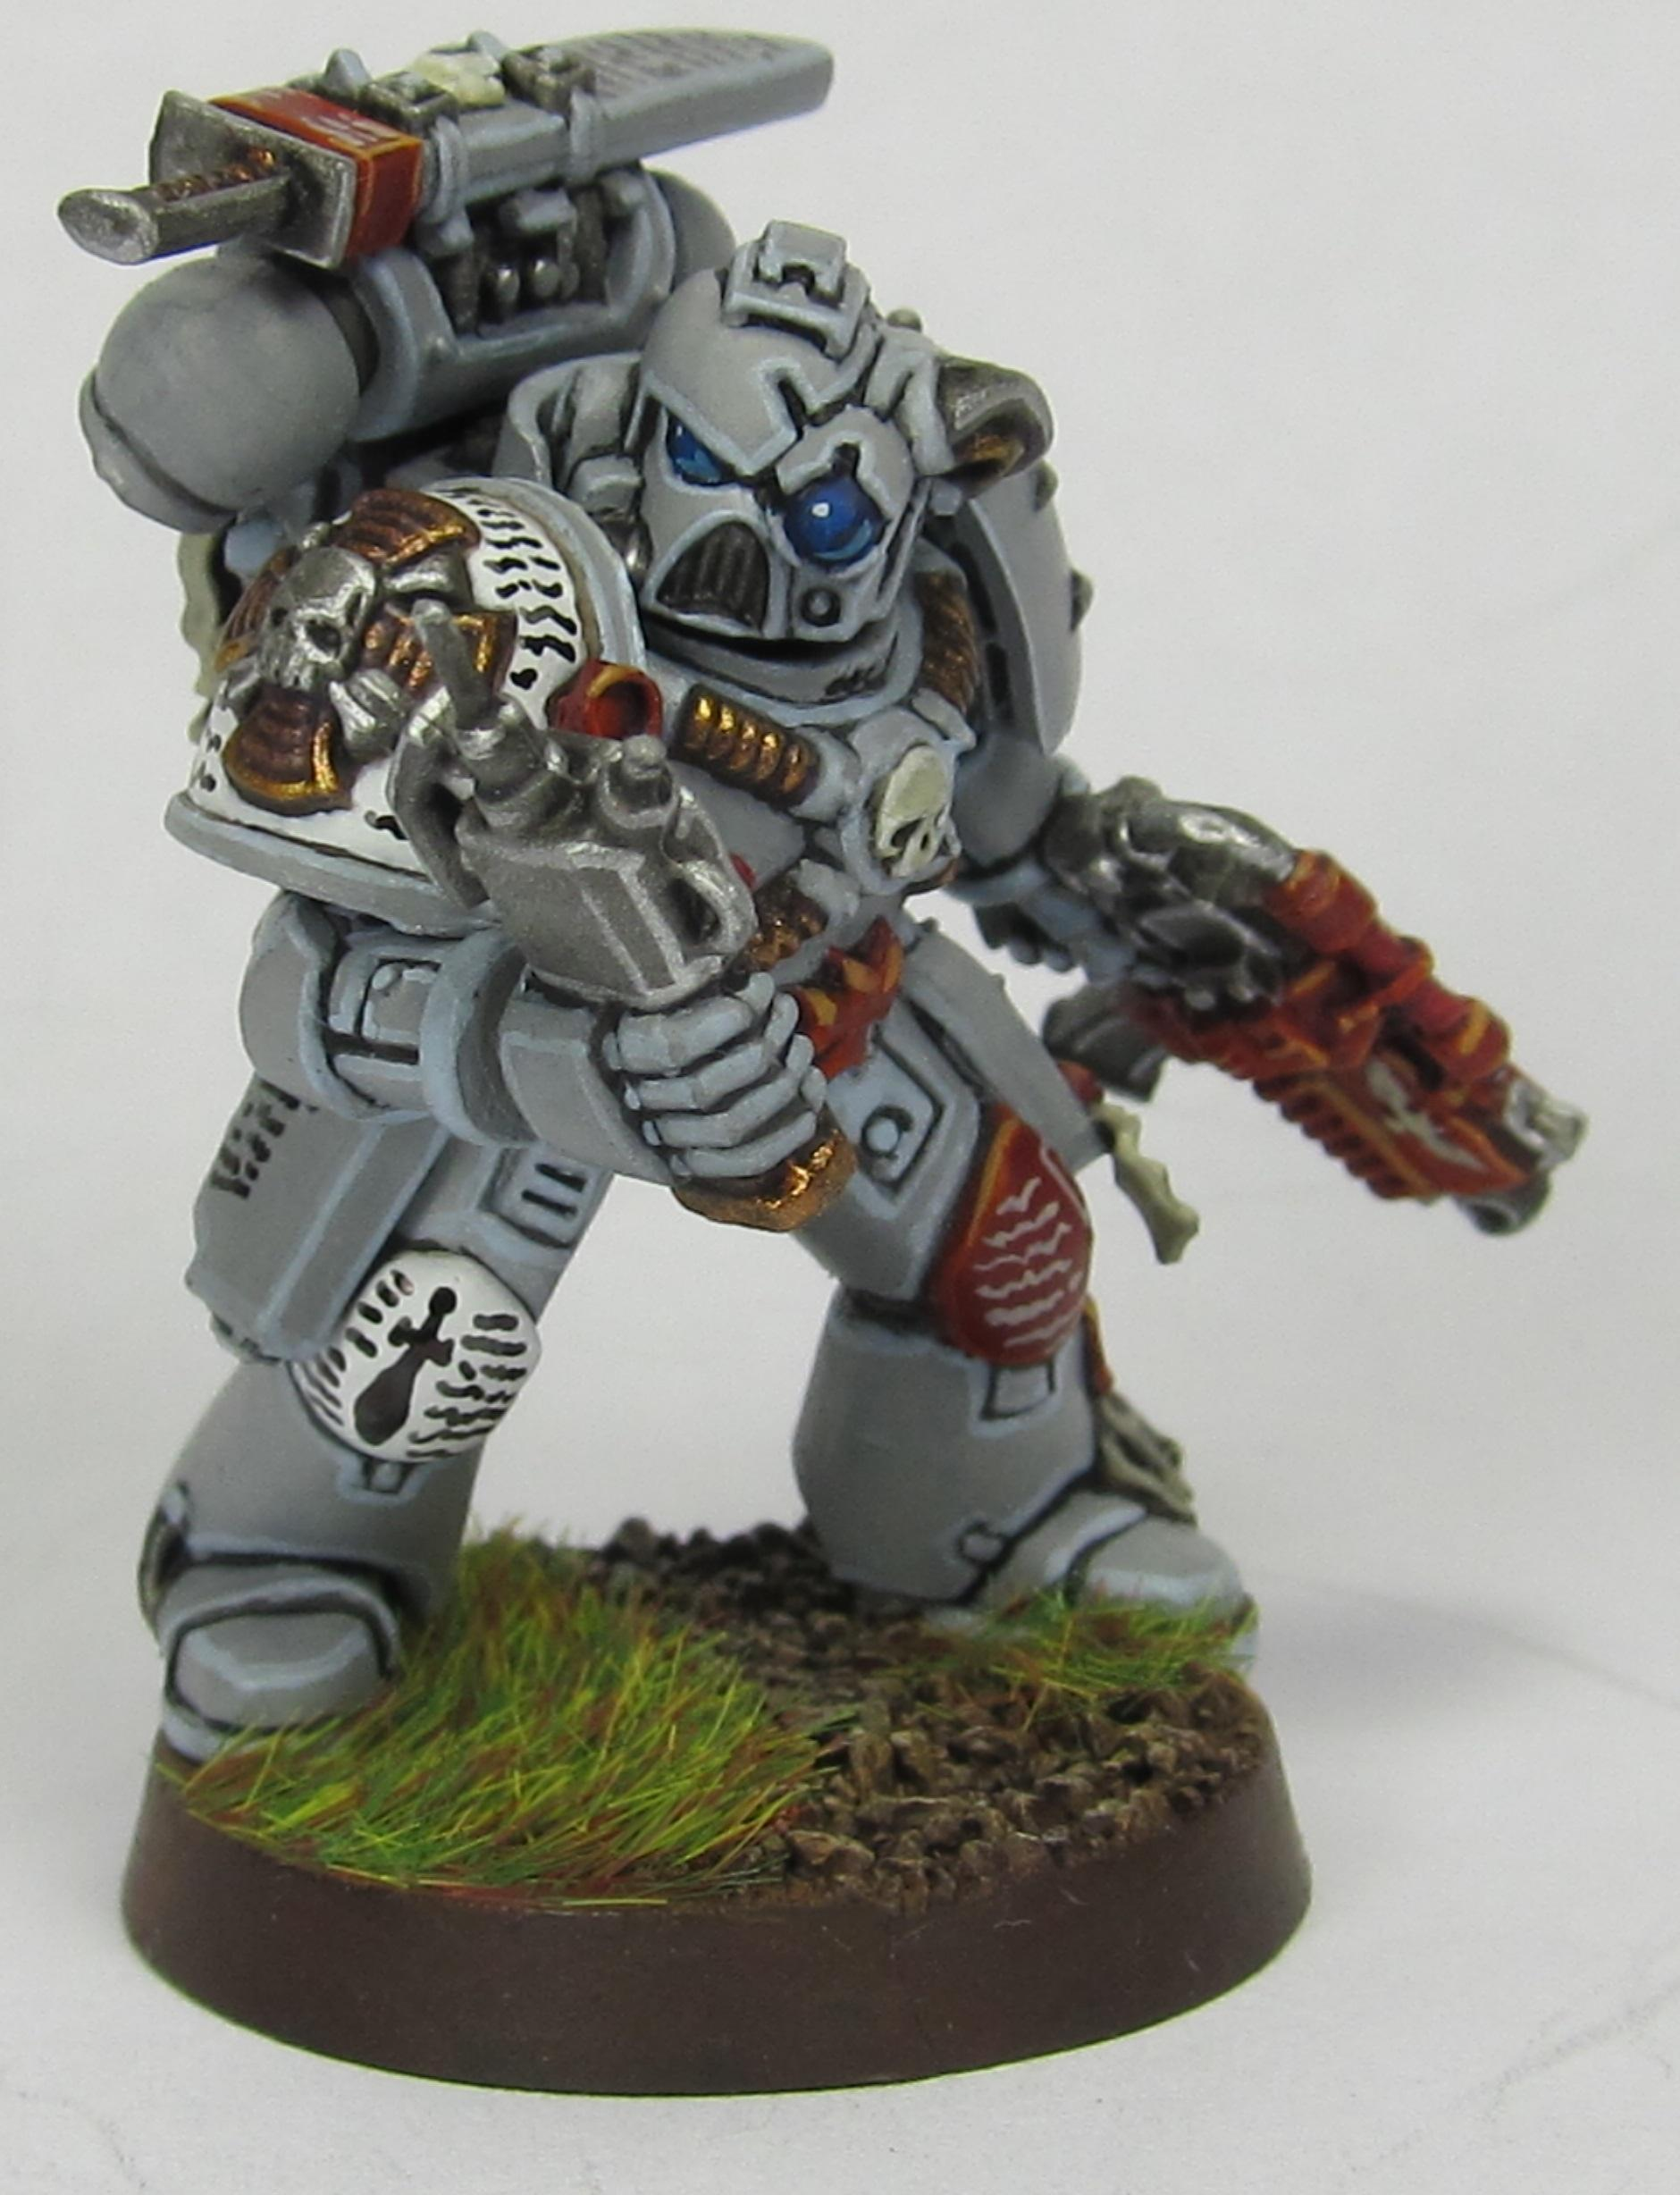 Apothecary, Space Marines, Warhammer 40,000